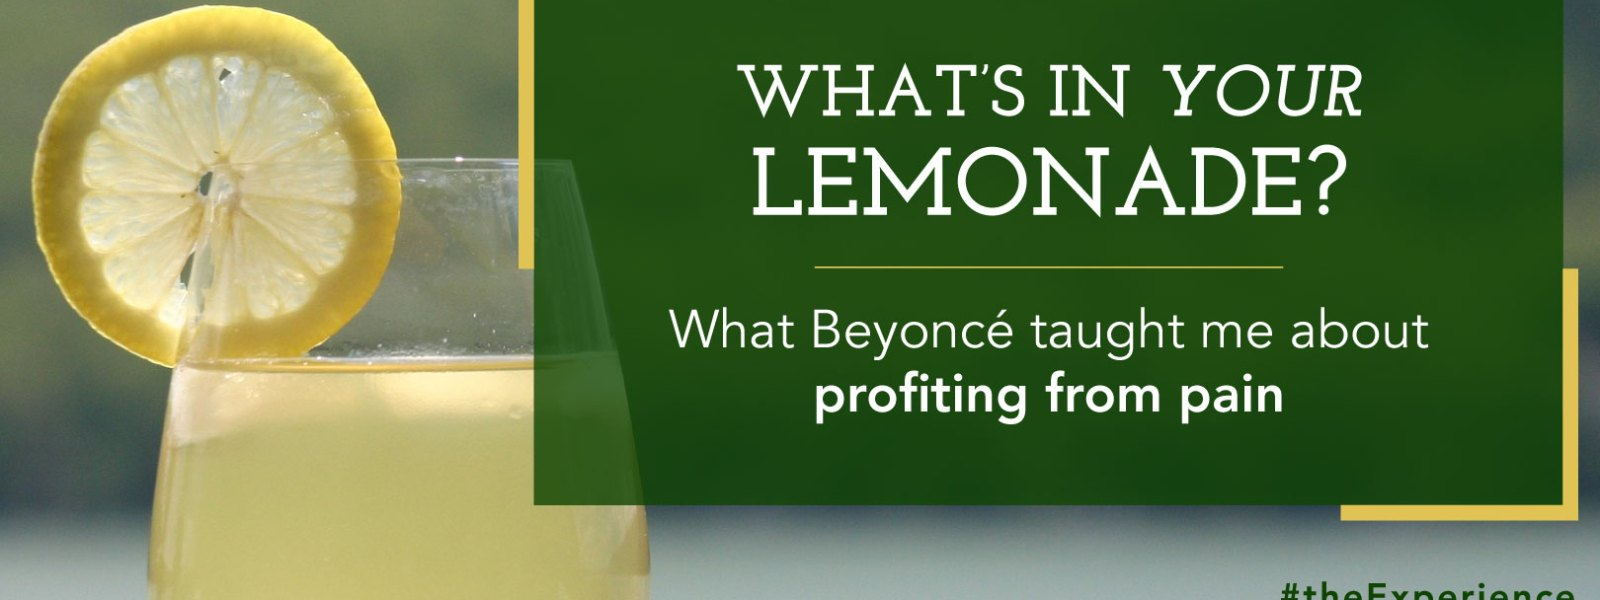 What's in YOUR Lemonade?